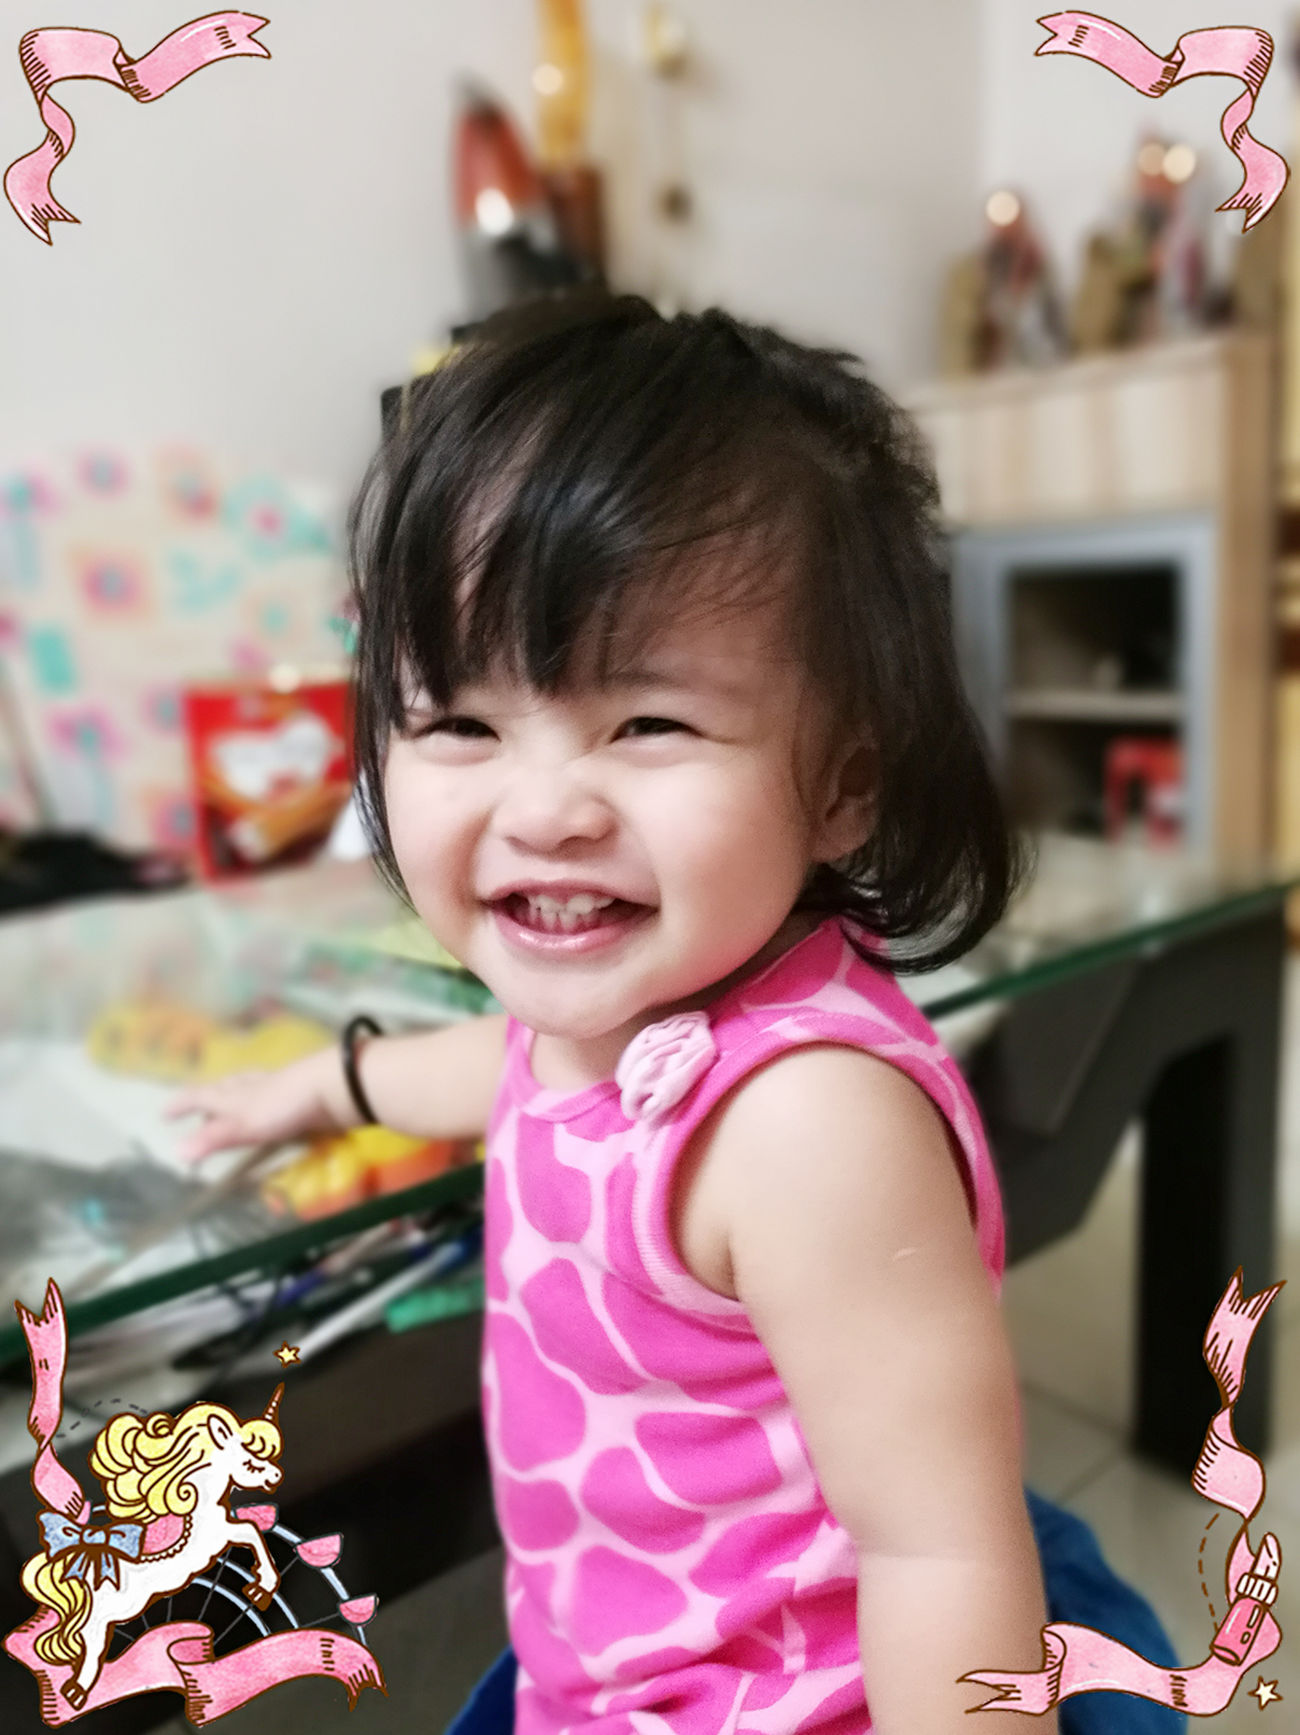 my lovely girl😘😘 Smiling Fun Happiness Cute First Eyeem Photo